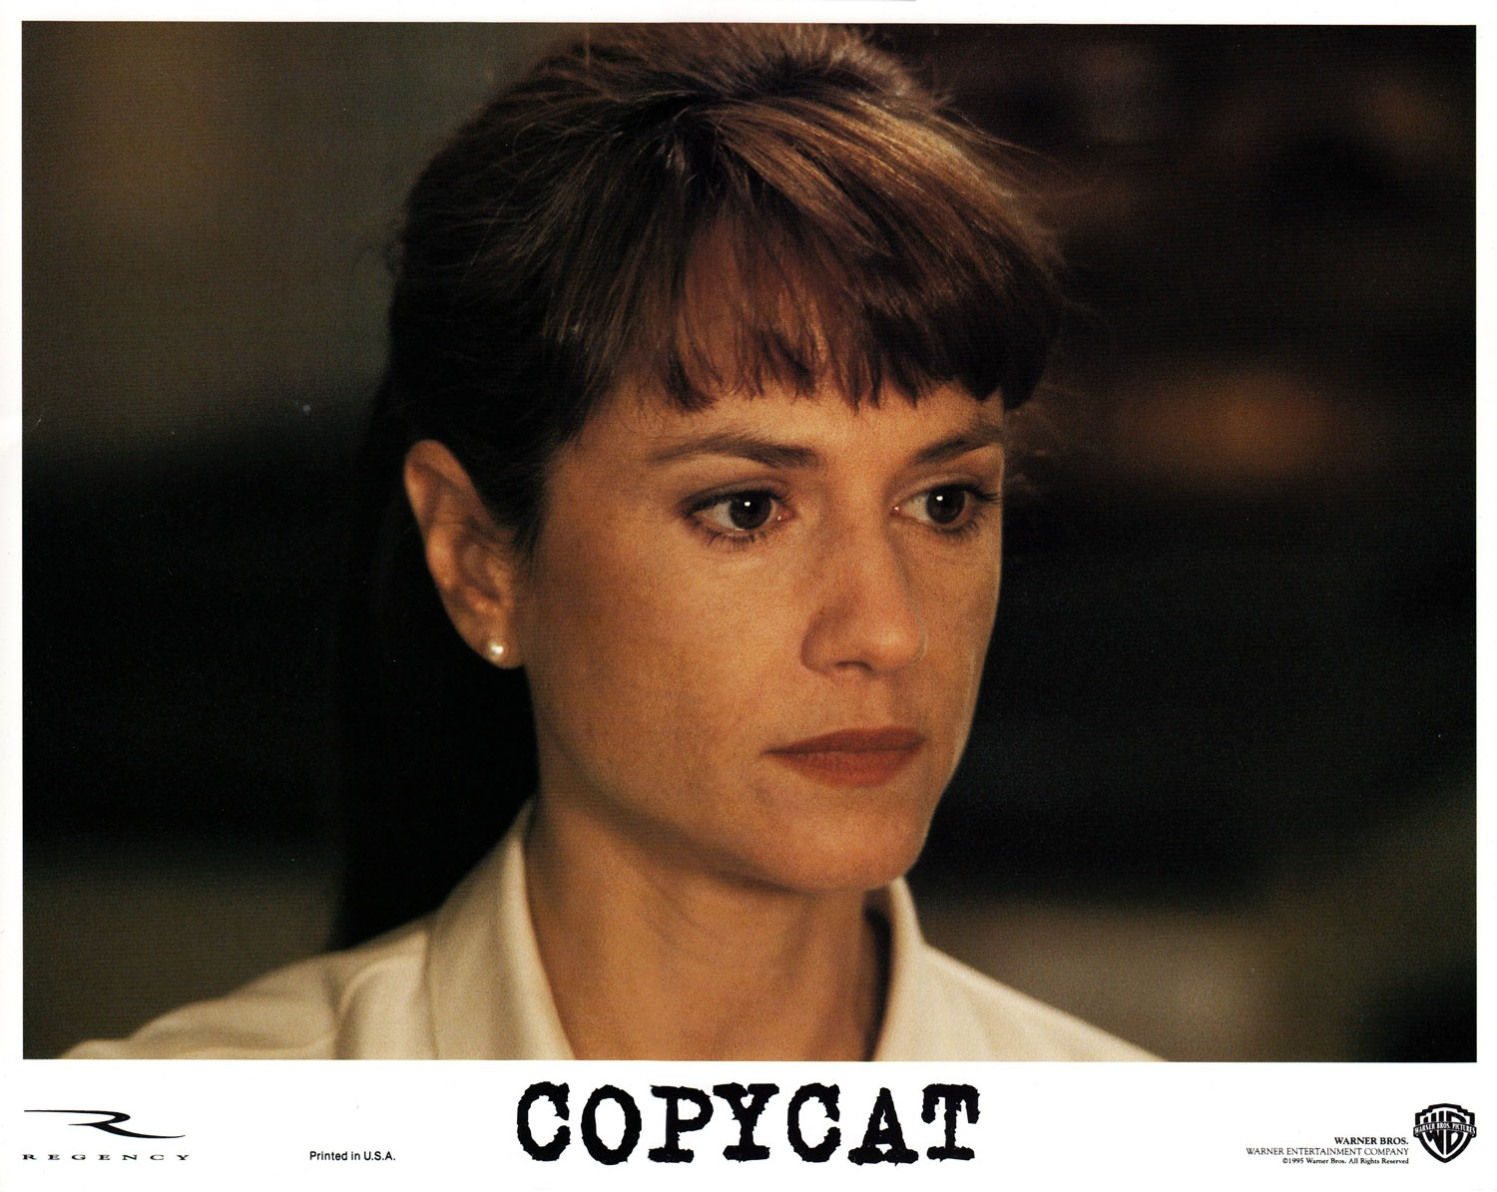 copycat-uk-7